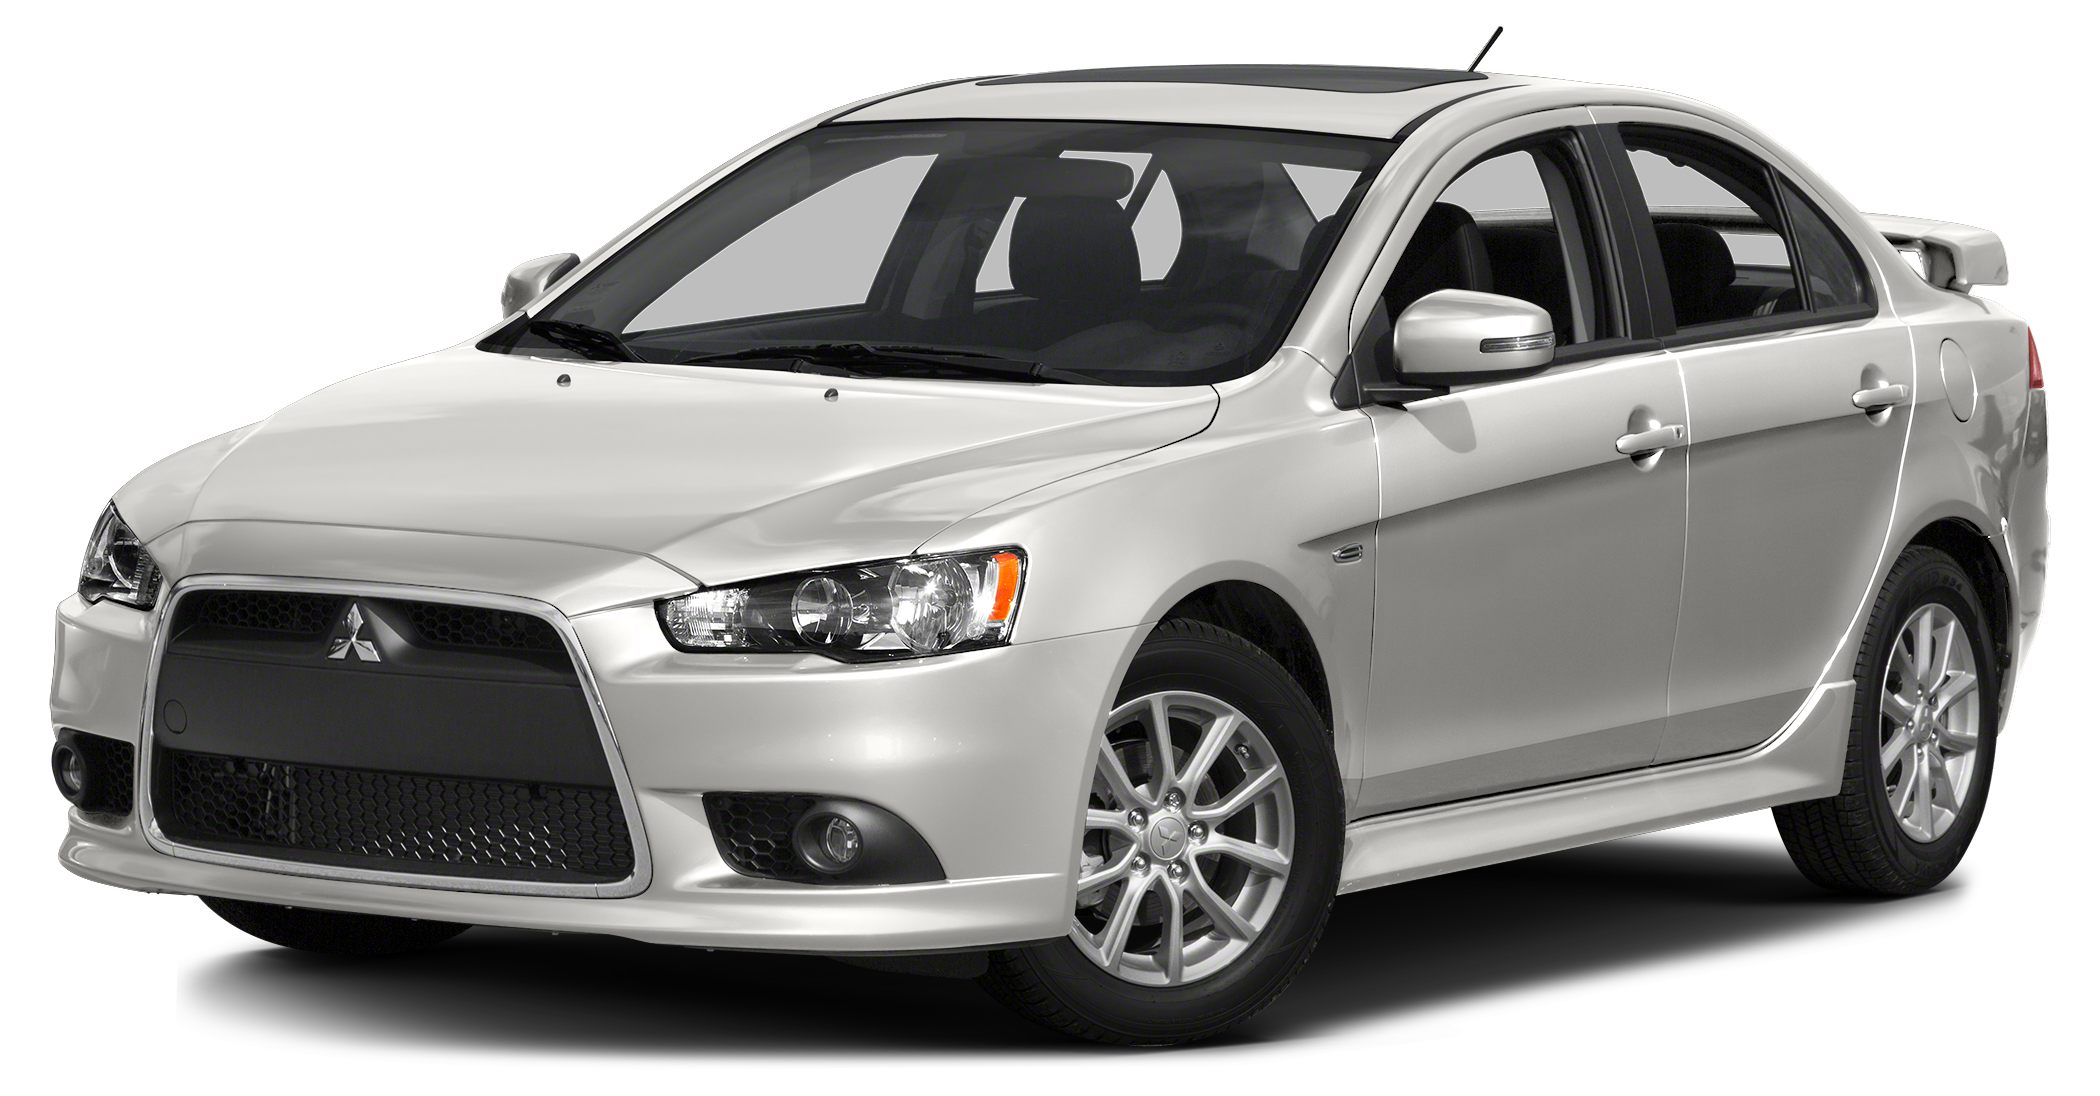 2015 Mitsubishi Lancer GT Miles 5Color Wicked White Metallic Stock 15M027 VIN JA32U8FWXFU0023